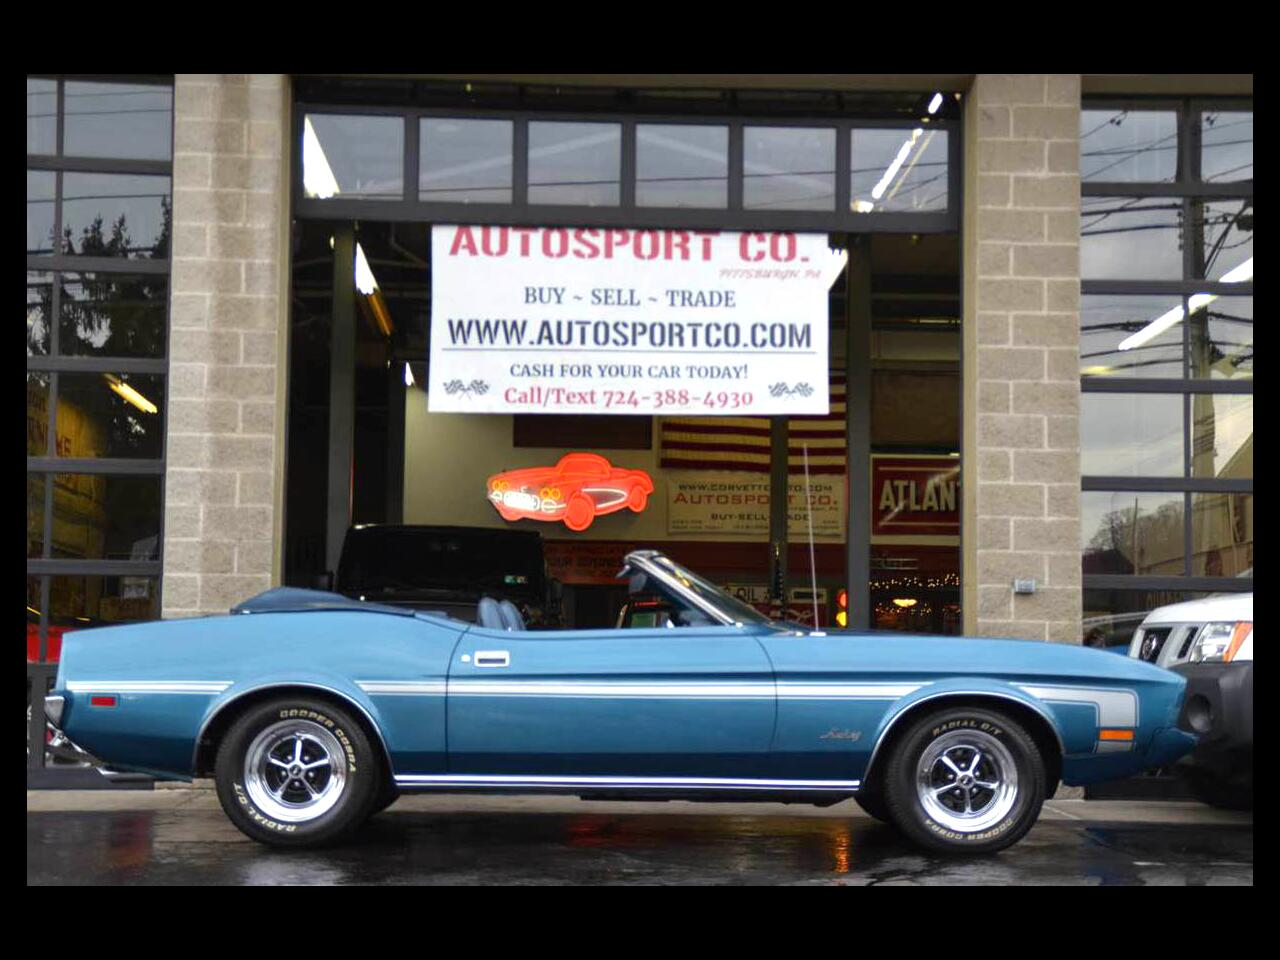 1973 Ford Mustang 2-Door Convertible 302 V8 w/Auto Tranmission